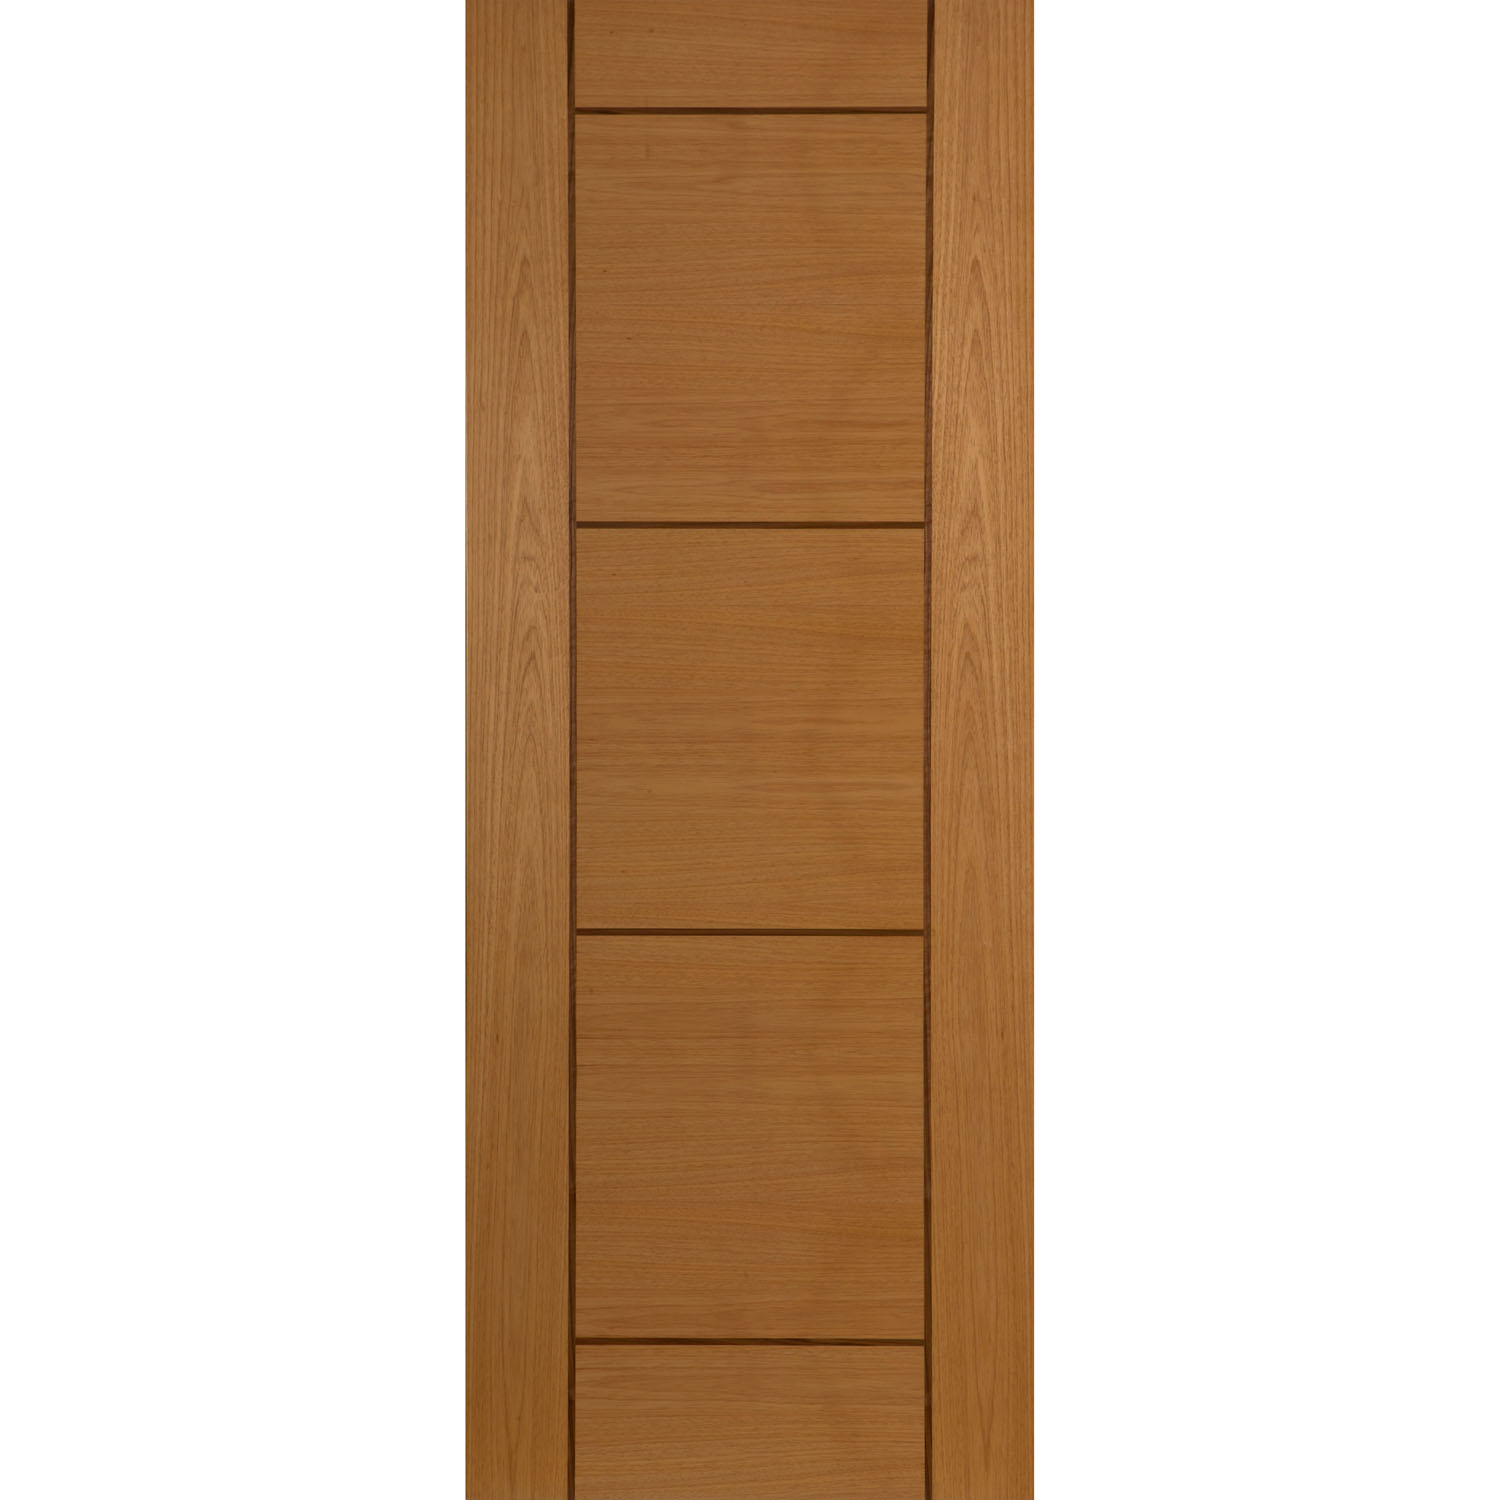 Wholesale interior doors in UK are made of wood